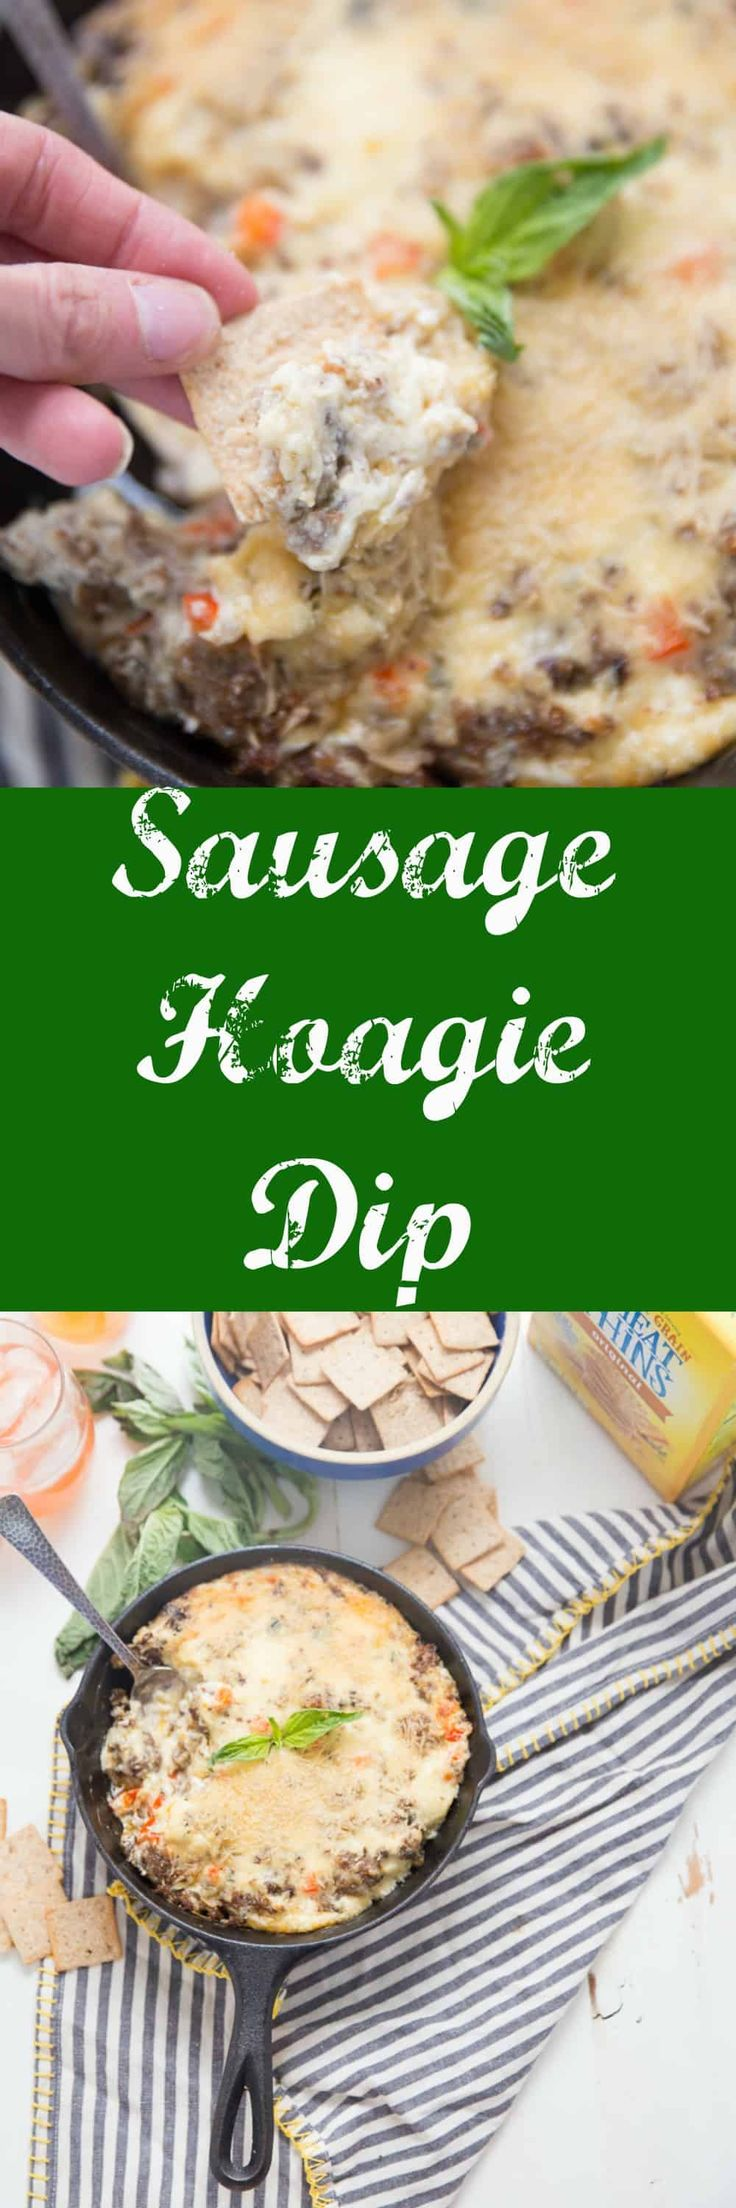 This zesty sausage hoagie dip is made with Italian sausage, three kinds of cheese and a whole lot of flavor!    This is great all-occasion party dip via @Lemonsforlulu @nabisco